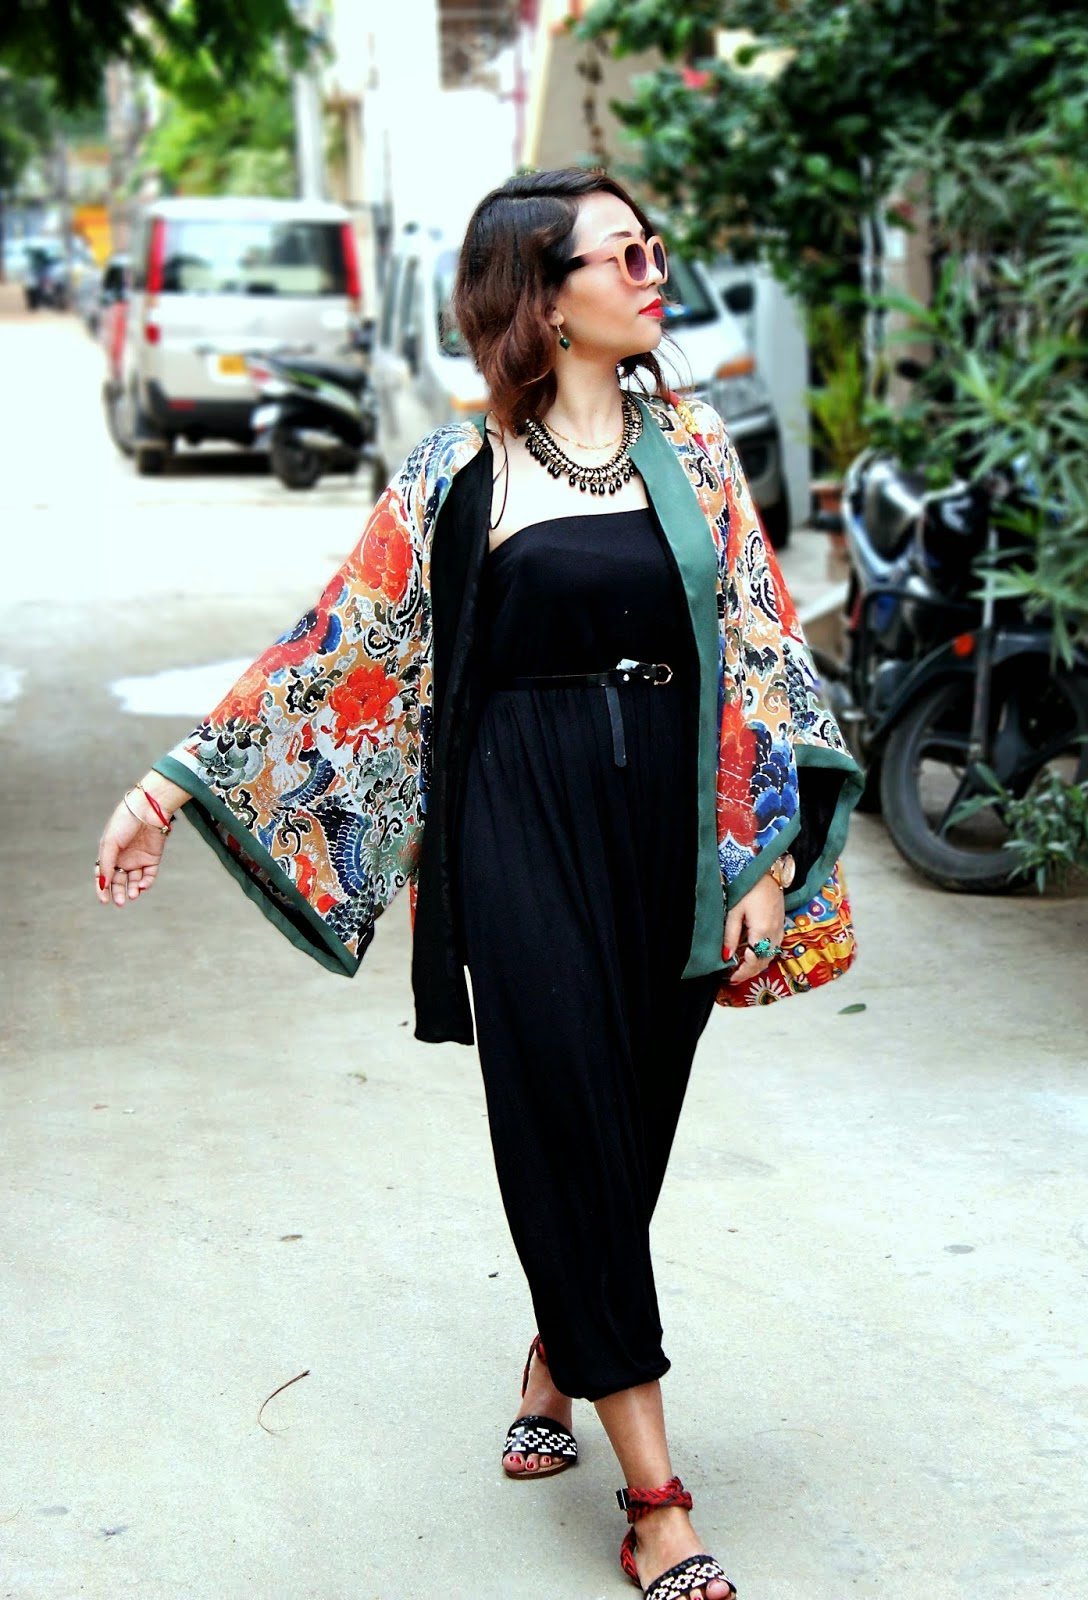 Wearing a Summer Kimono Cardigan with Black Jumpsuit